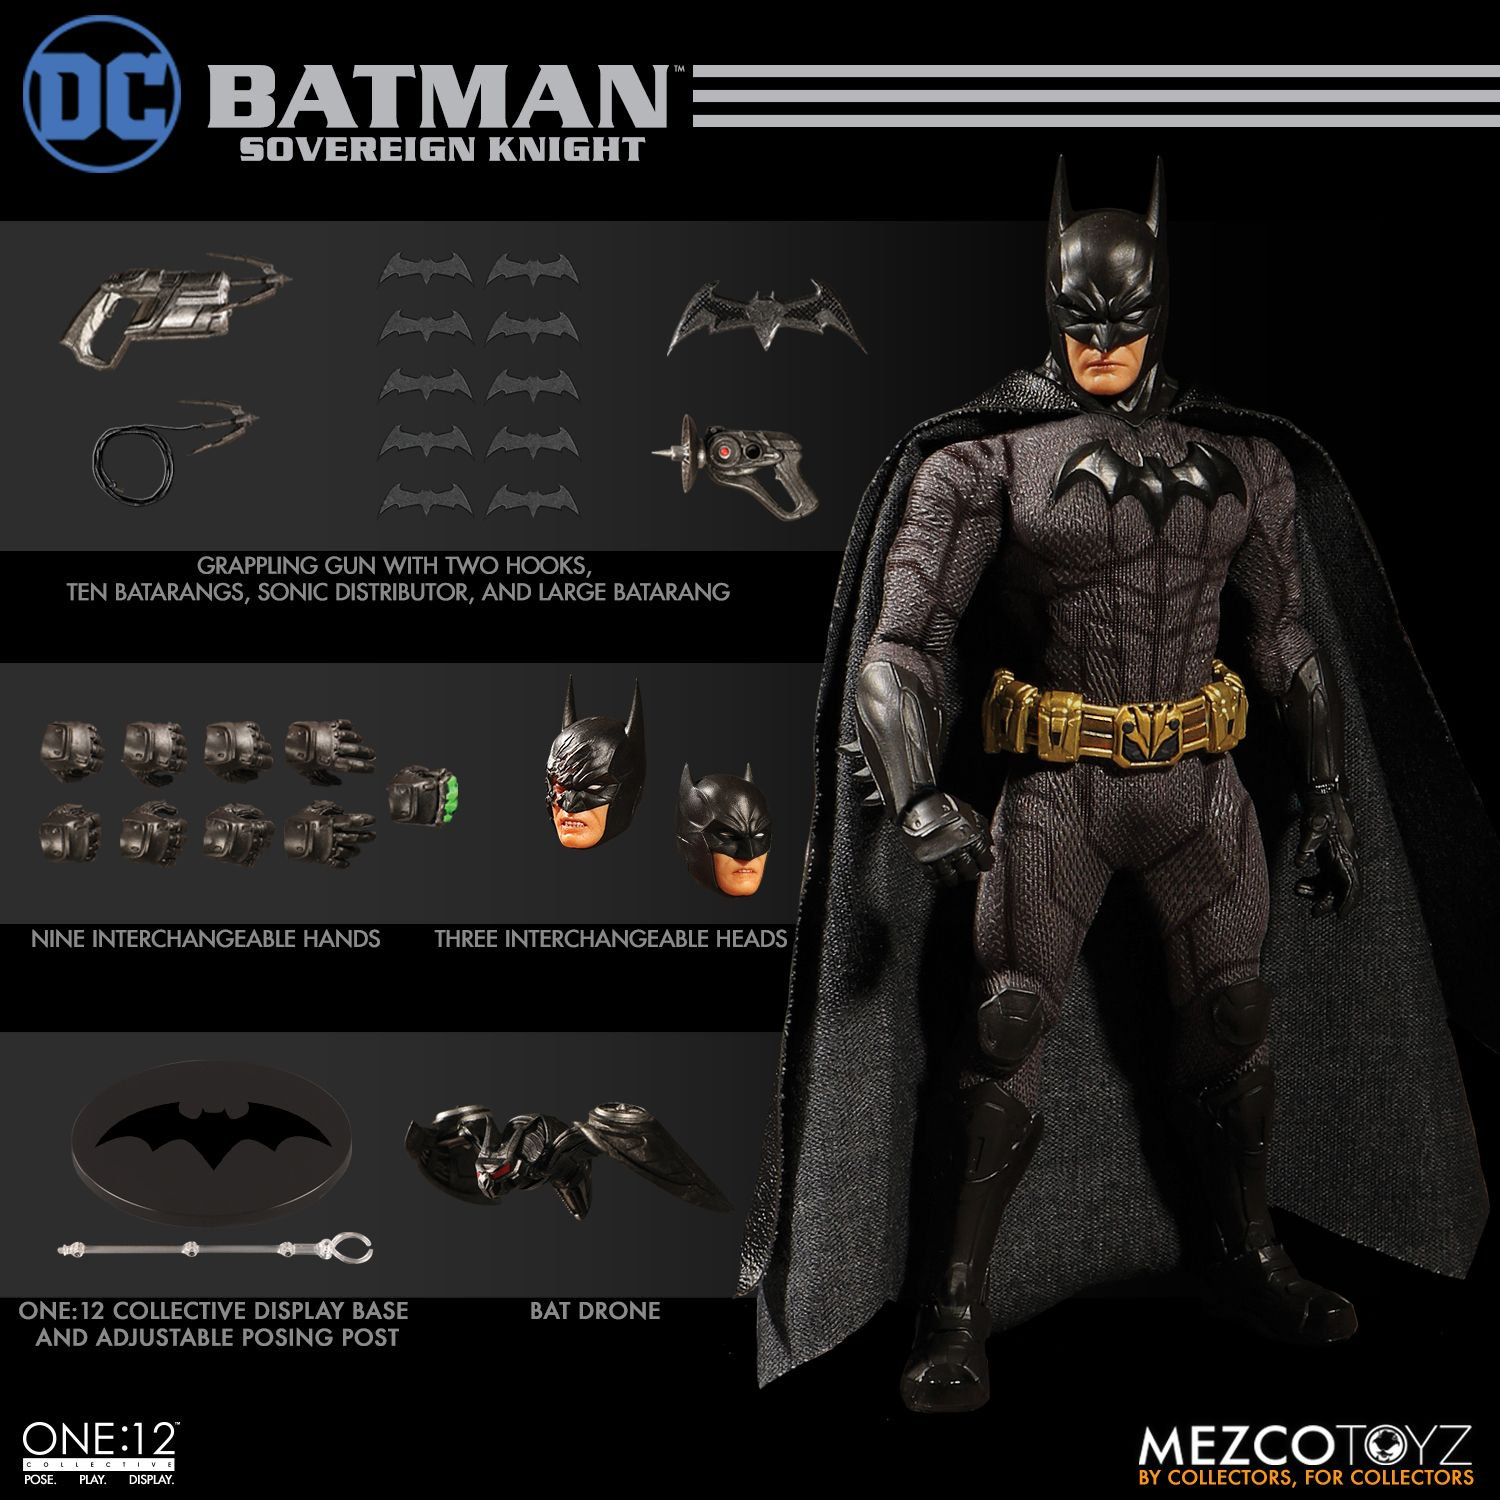 Mezco and its line of one12 collective figures have done a good job of creating figures for characters that dont get a lot of collectibles made